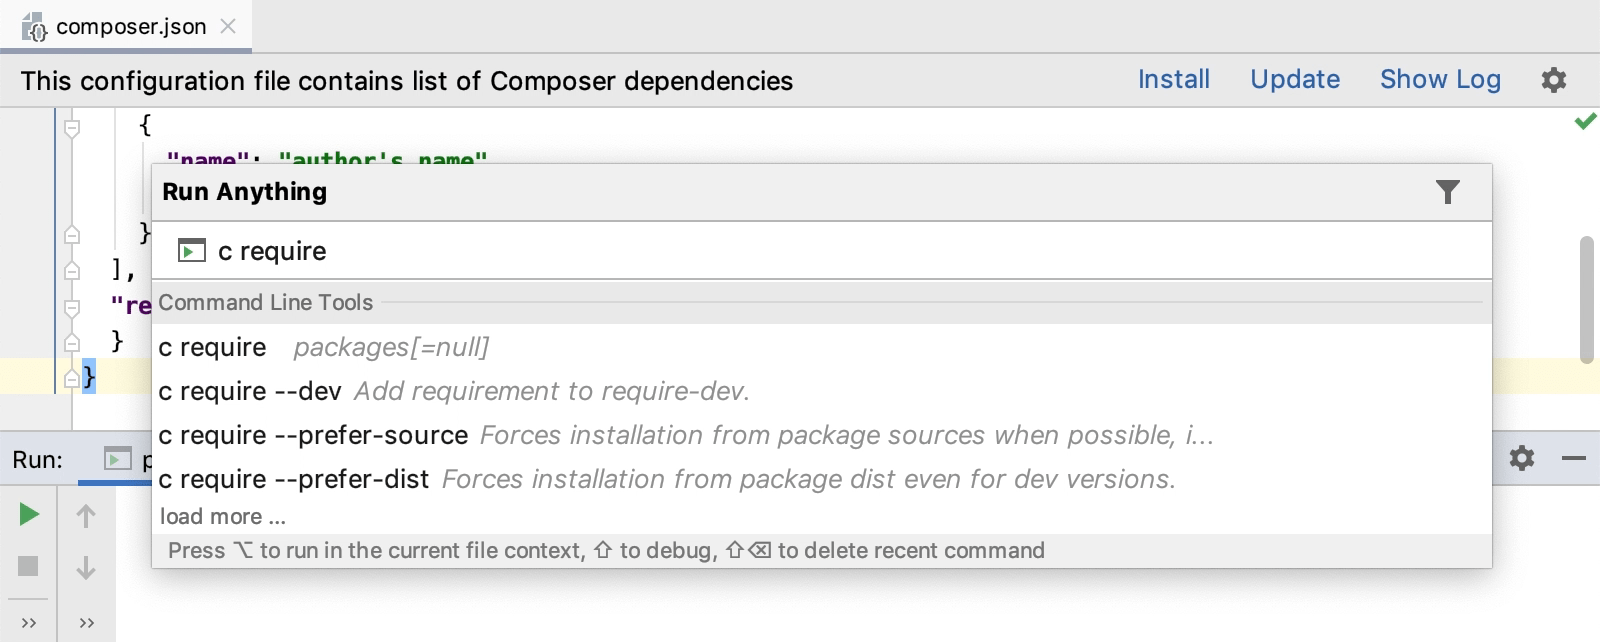 Running a composer command